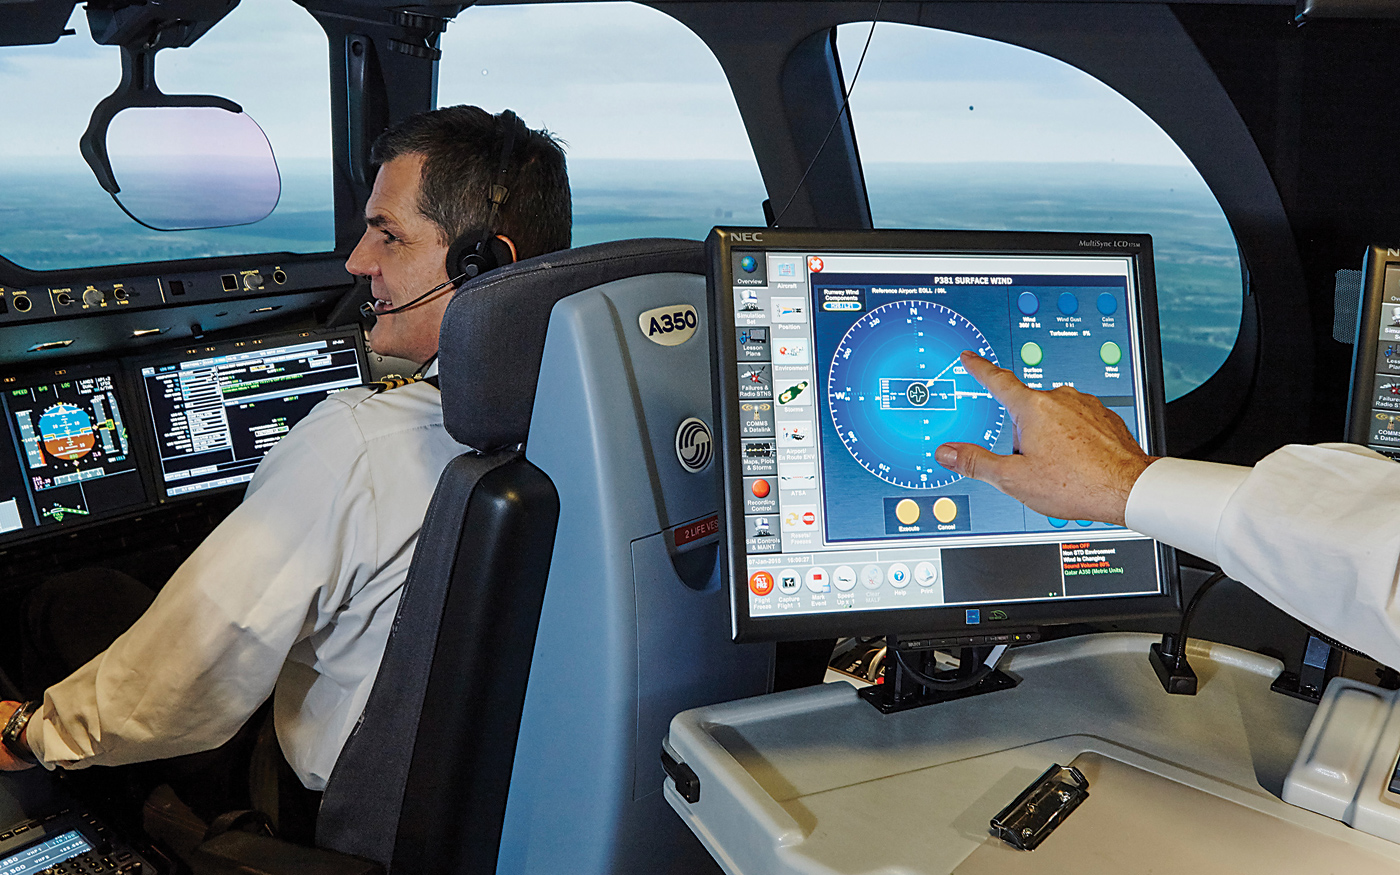 Founded in 1947 as an avionics repair company, Canadian Aviation Electronics by the 1980s was breaking new ground in flight simulation, an innovation that transformed both pilot training and flight safety. Shown here, the company's A350 full-flight simulator cockpit. Photos courtesy of CAE